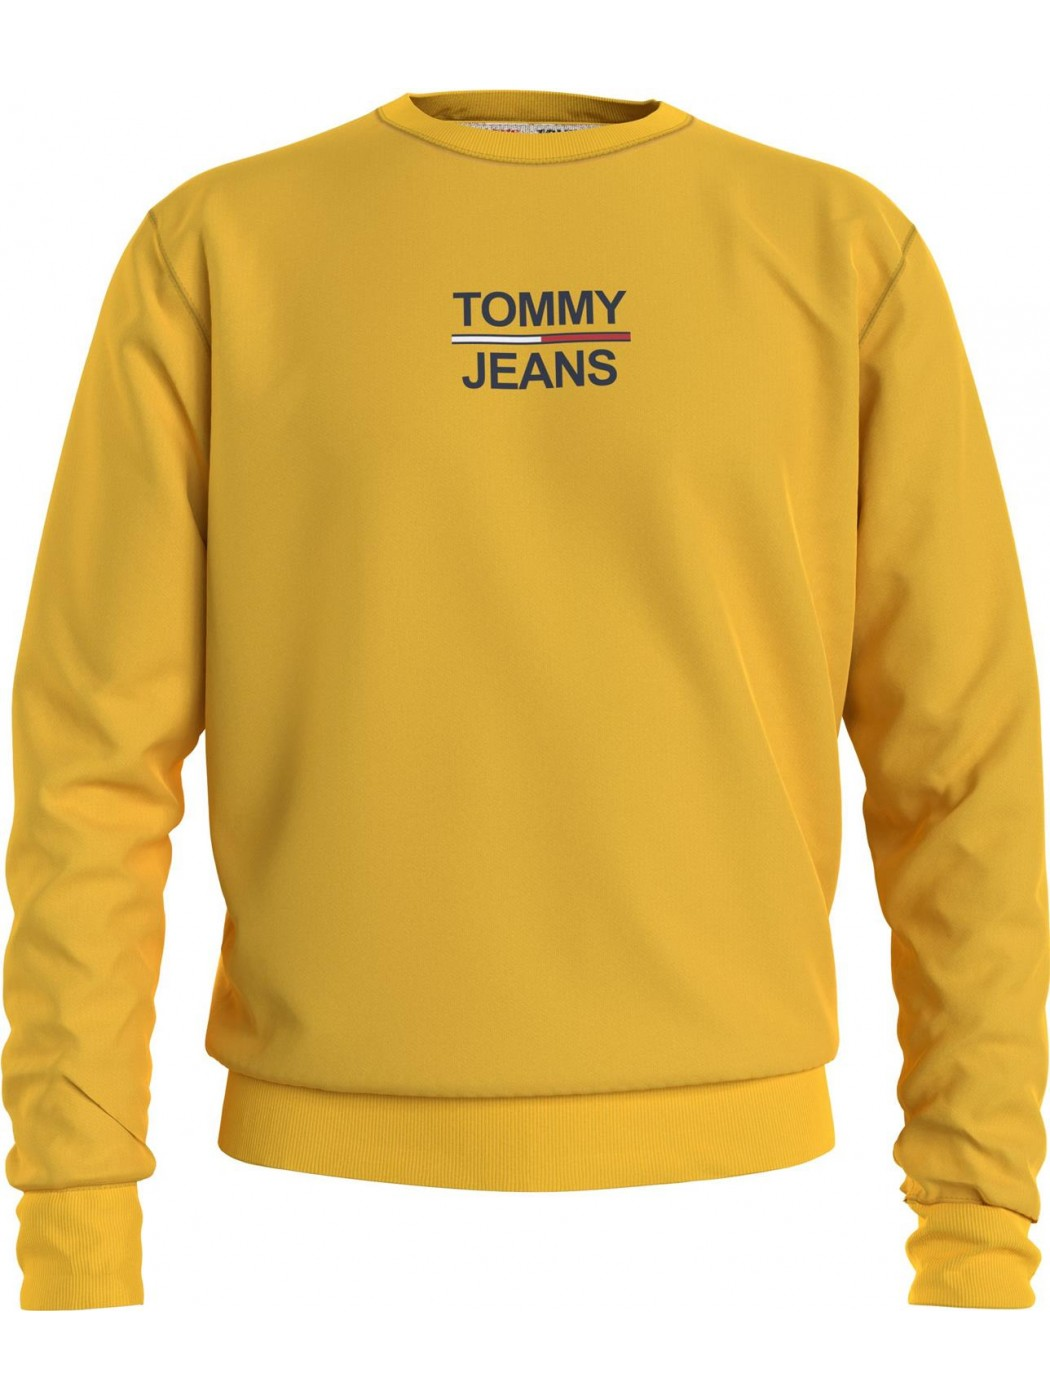 SUDADERA TOMMY JEANS ESSENTIAL